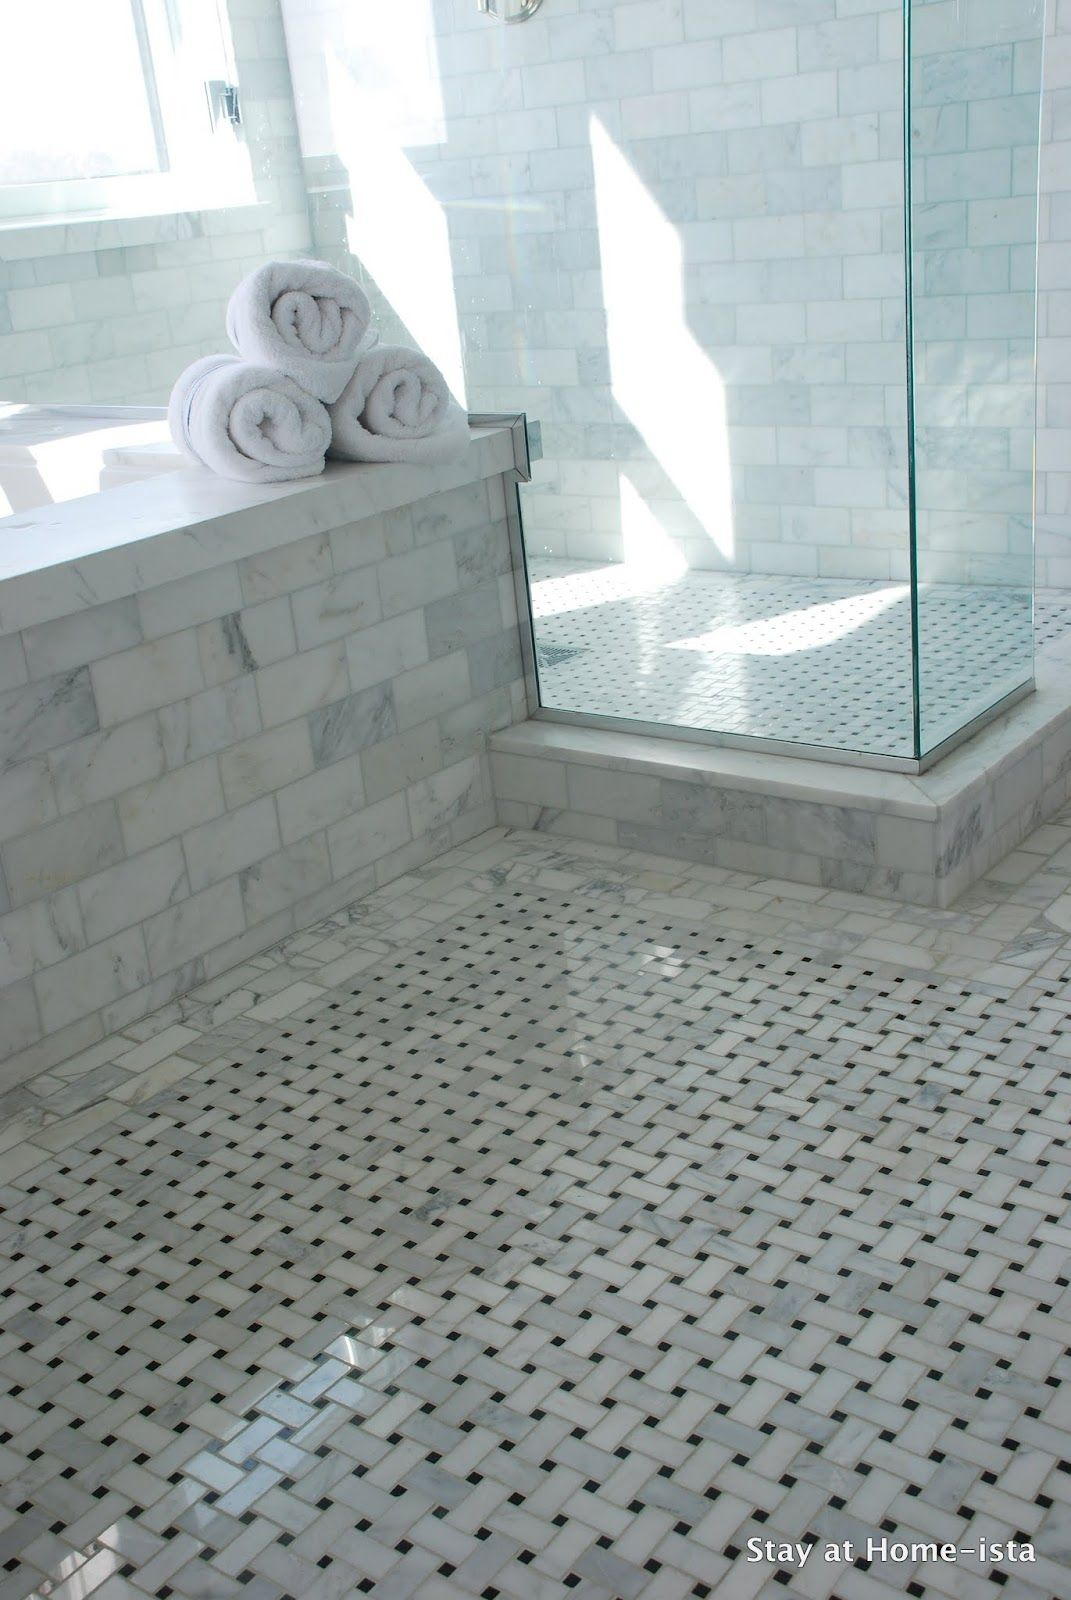 35 nice pictures and photos of old bathroom tile house for Carrara marble bathroom floor designs